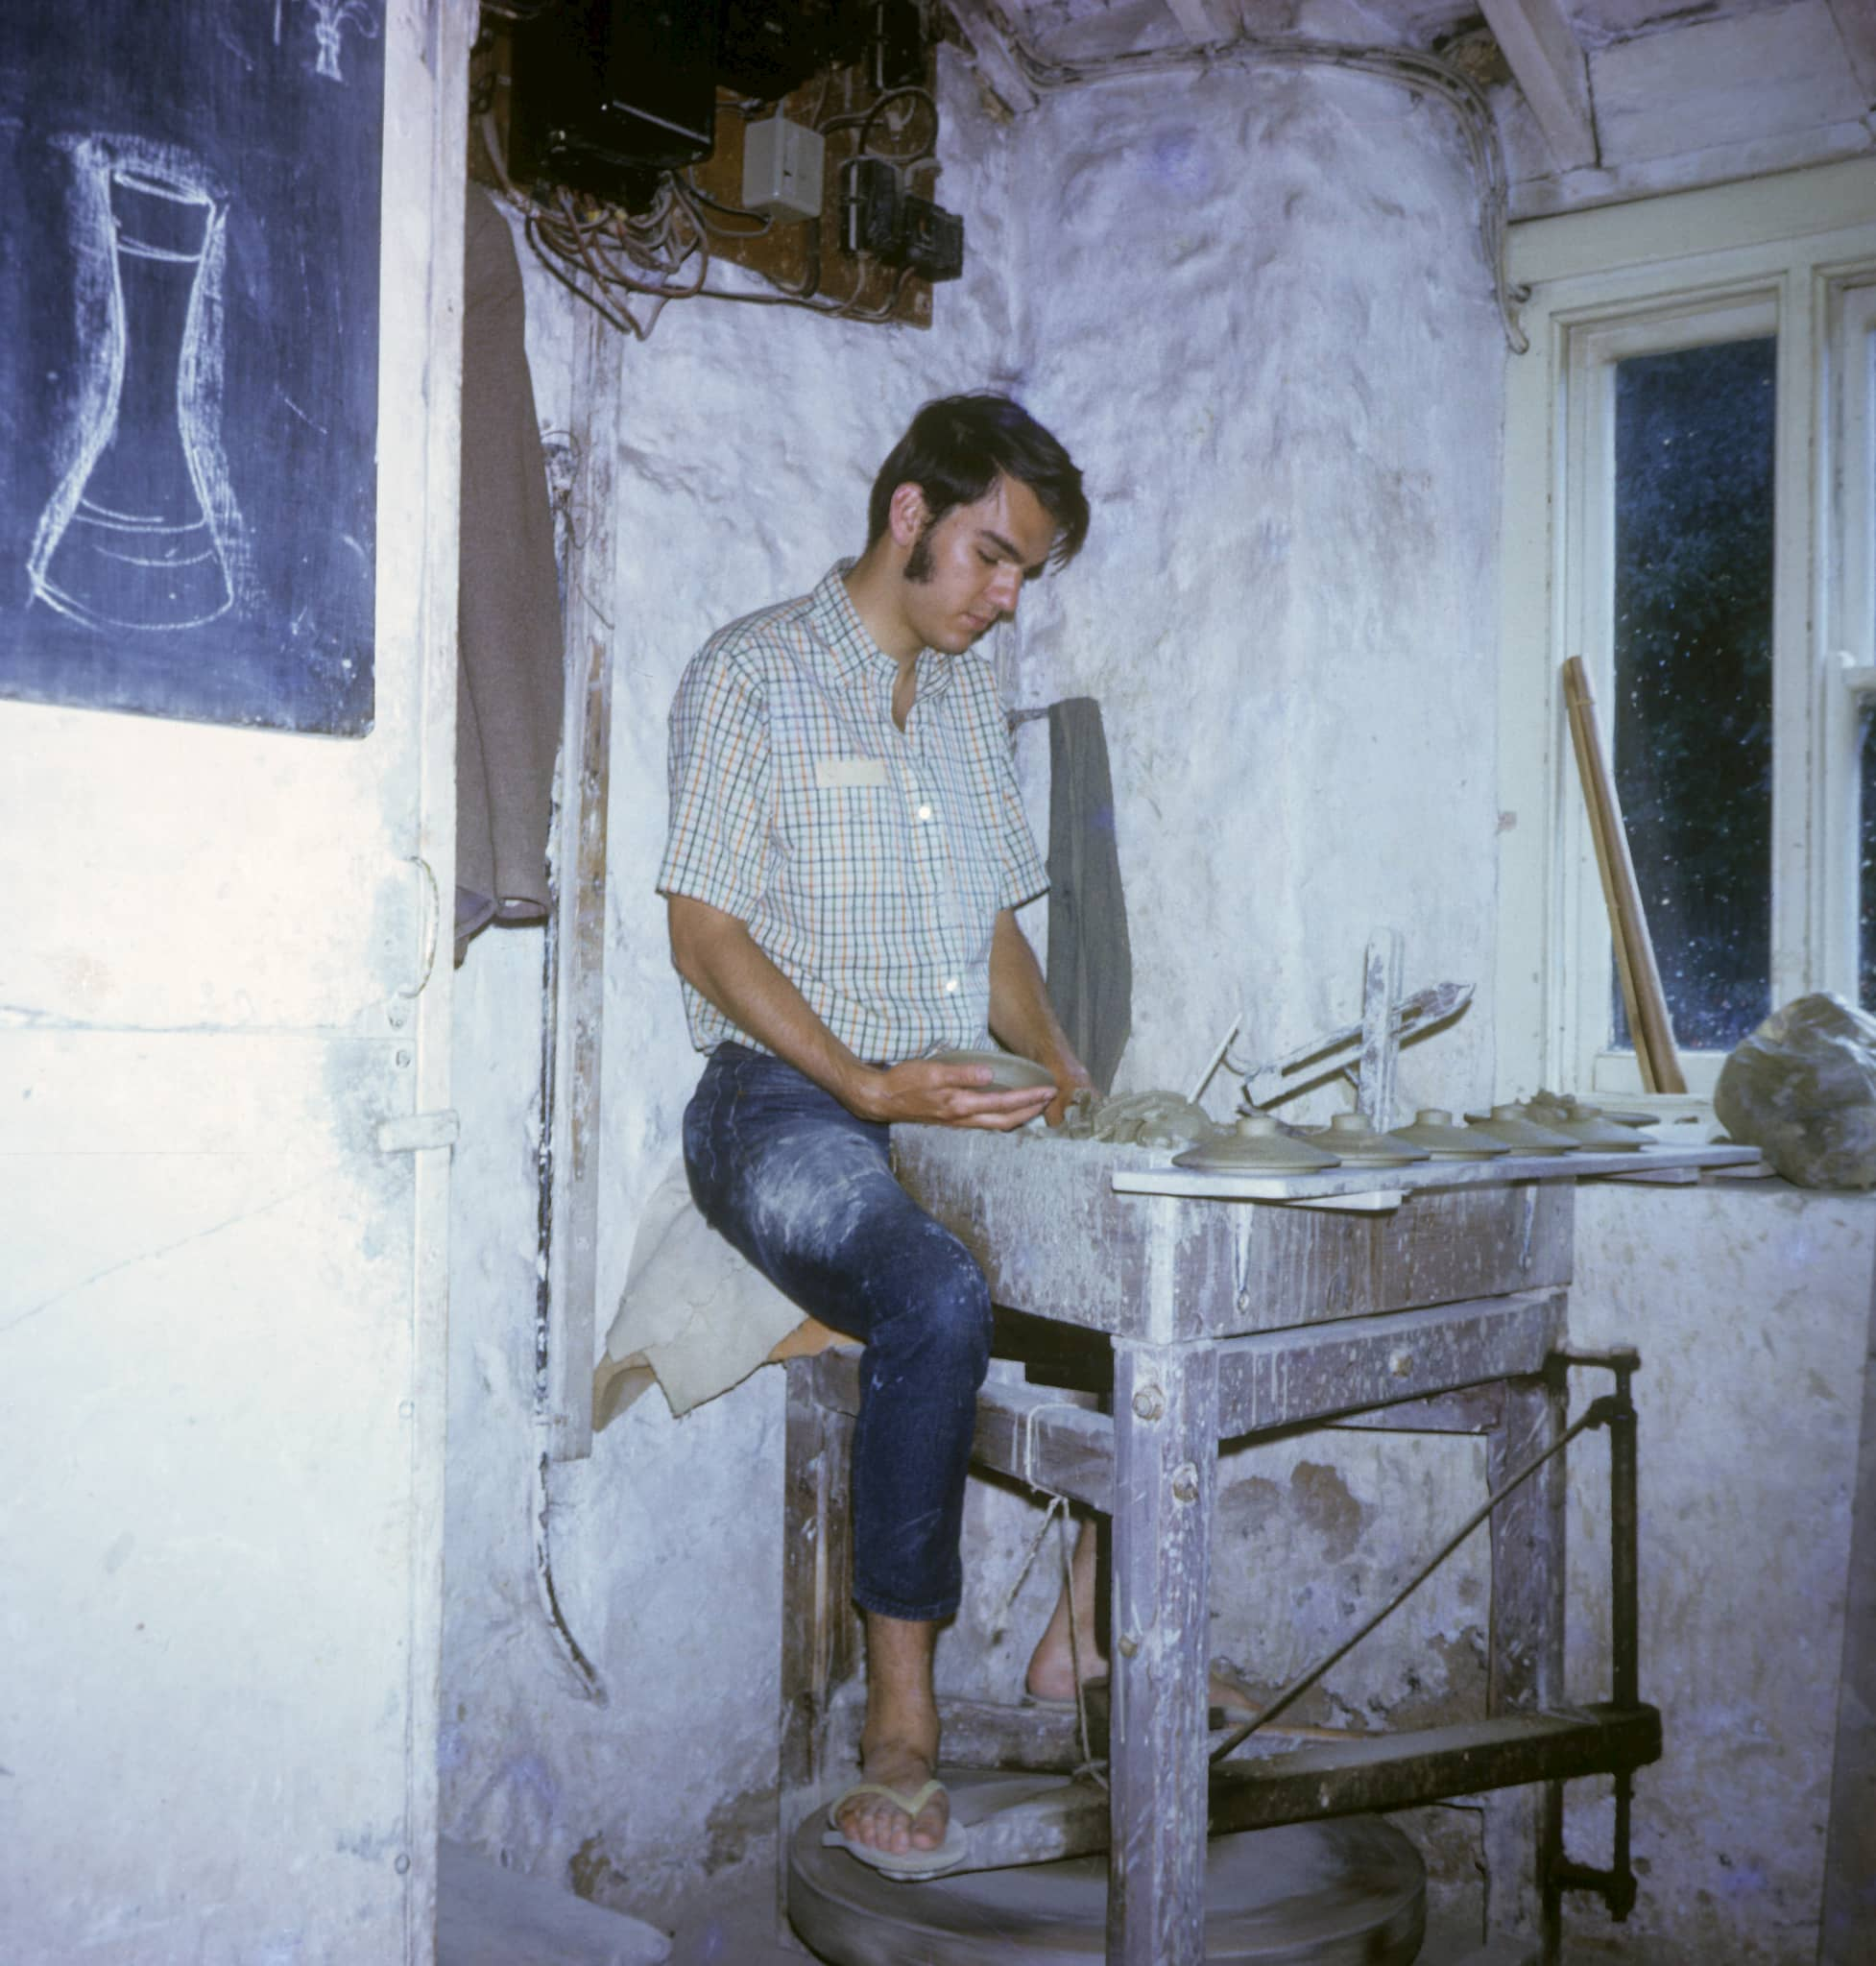 Jeff Oestreich at the potter's wheel at Leach Pottery, 1970. Courtesy of Jeff Oestreich. Craft in America CROSSROADS